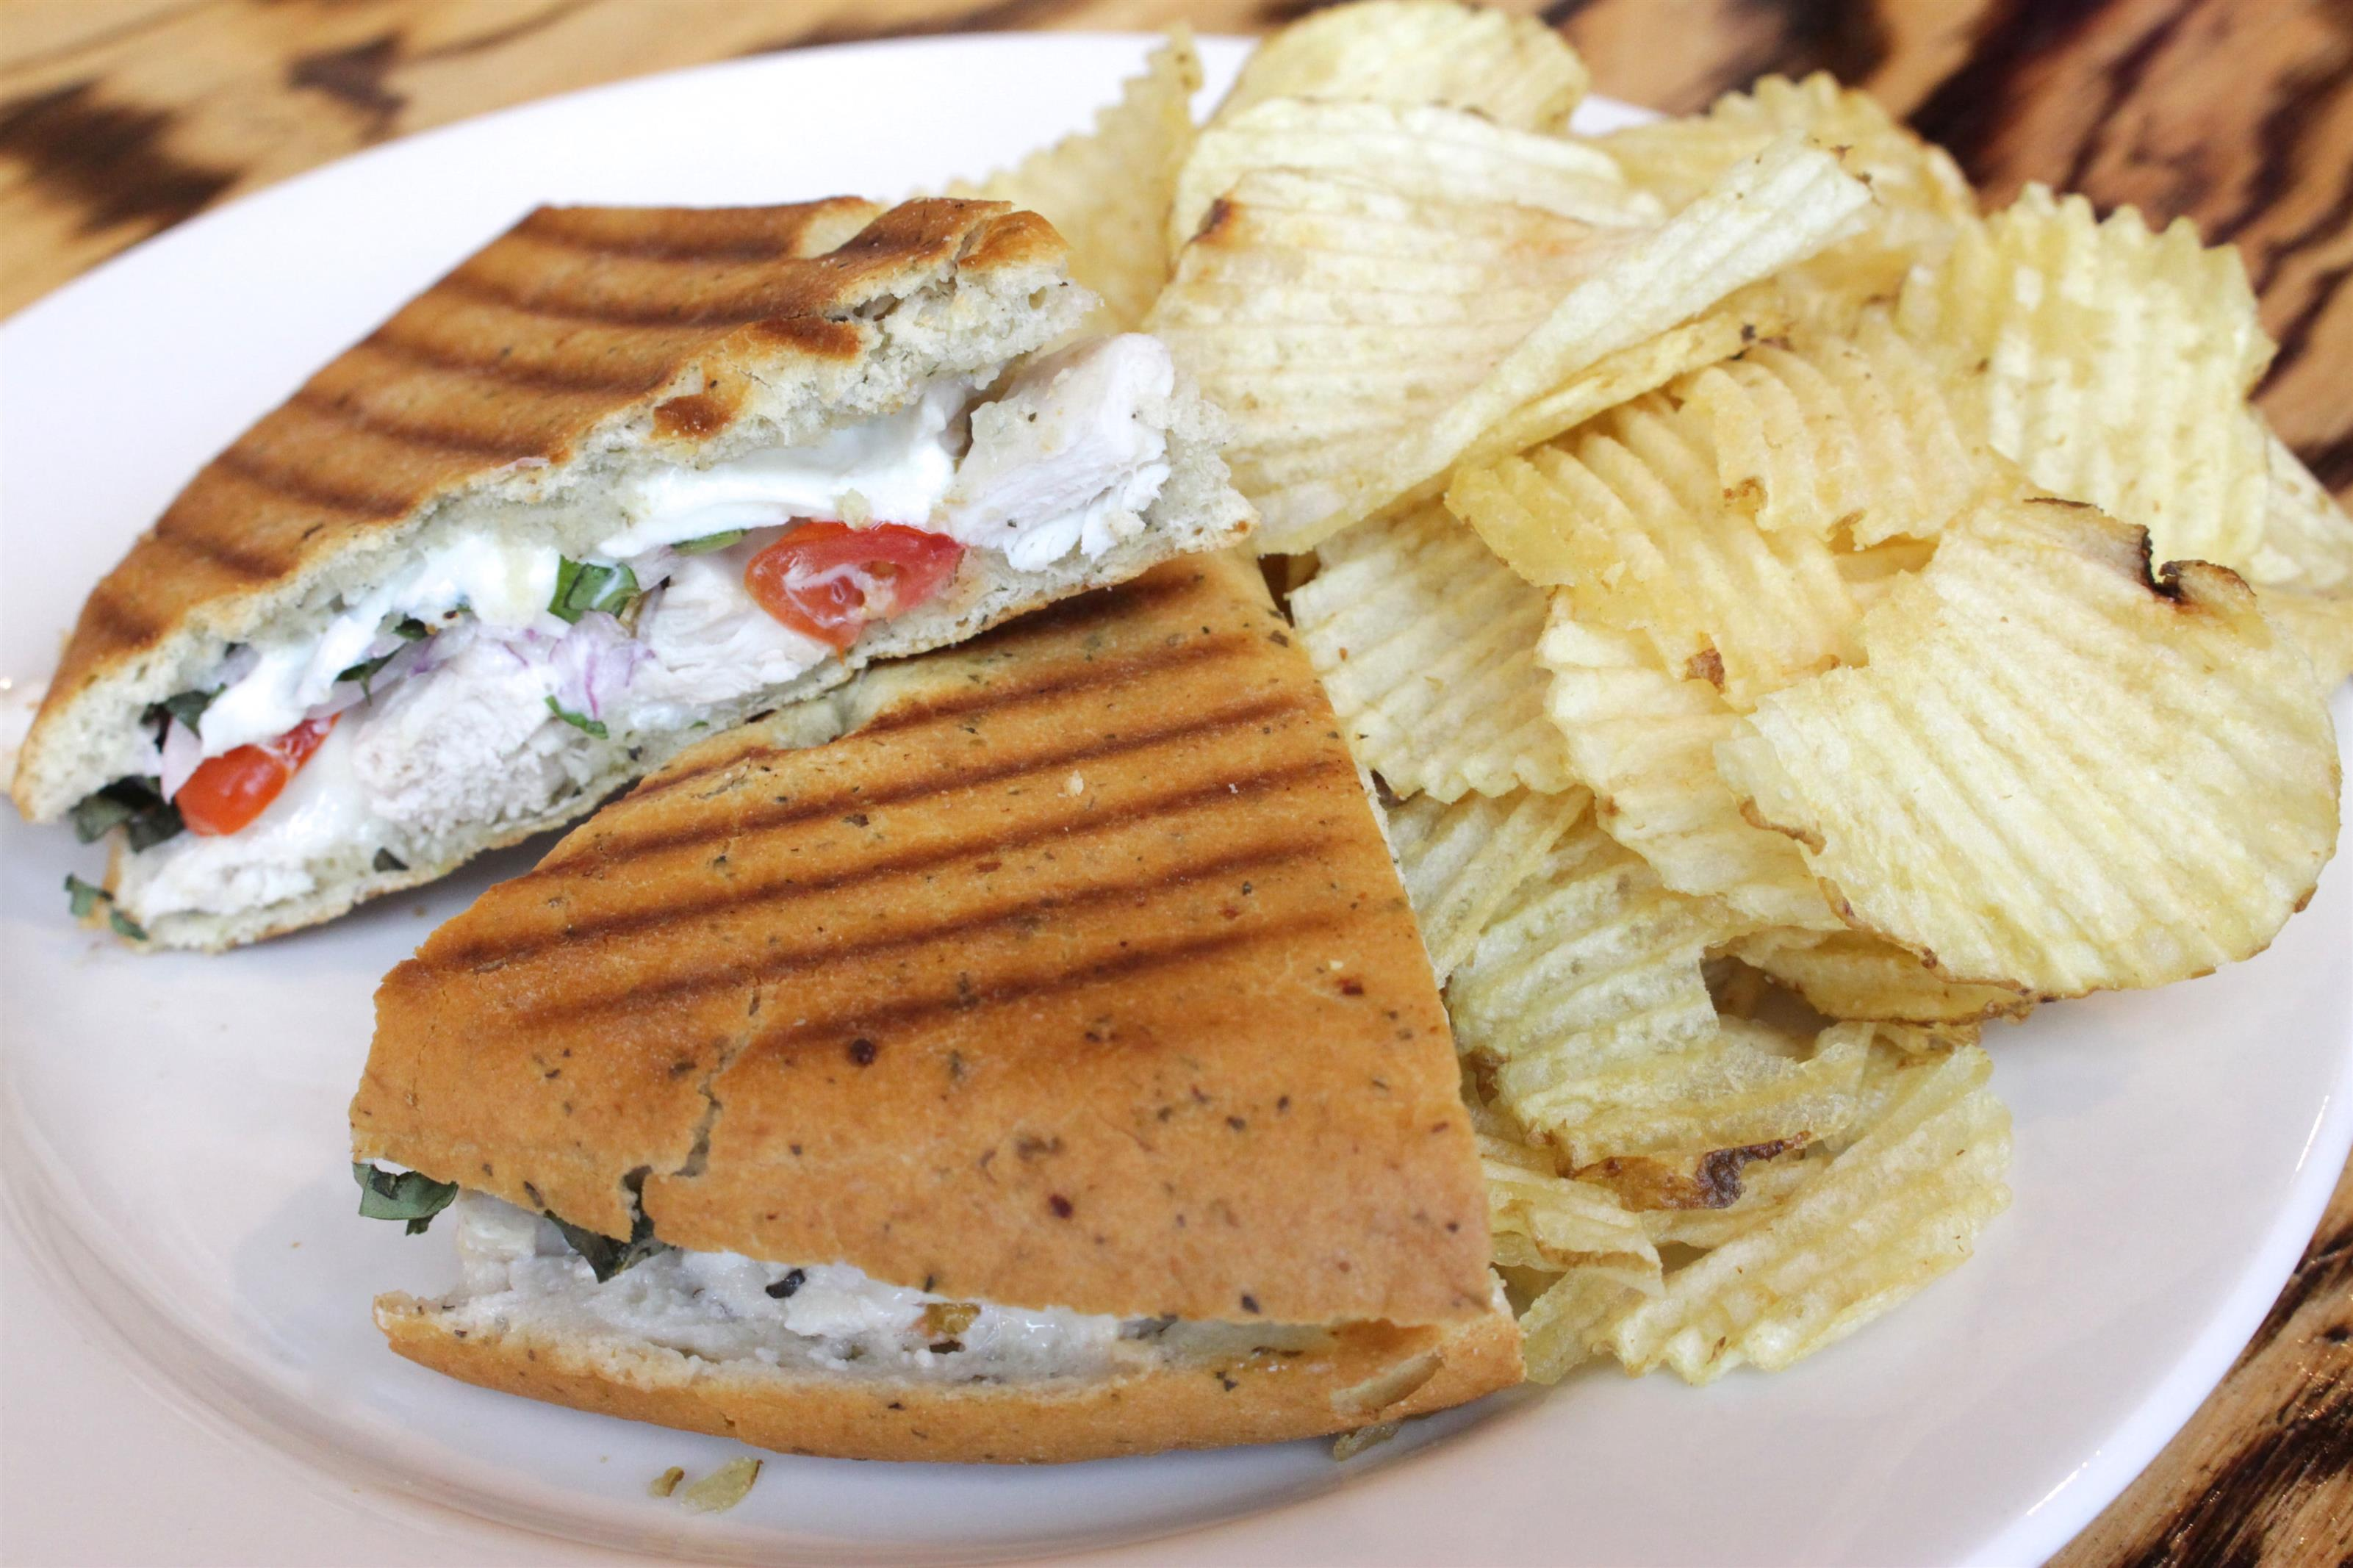 Flatbread sandwich with side of chips.